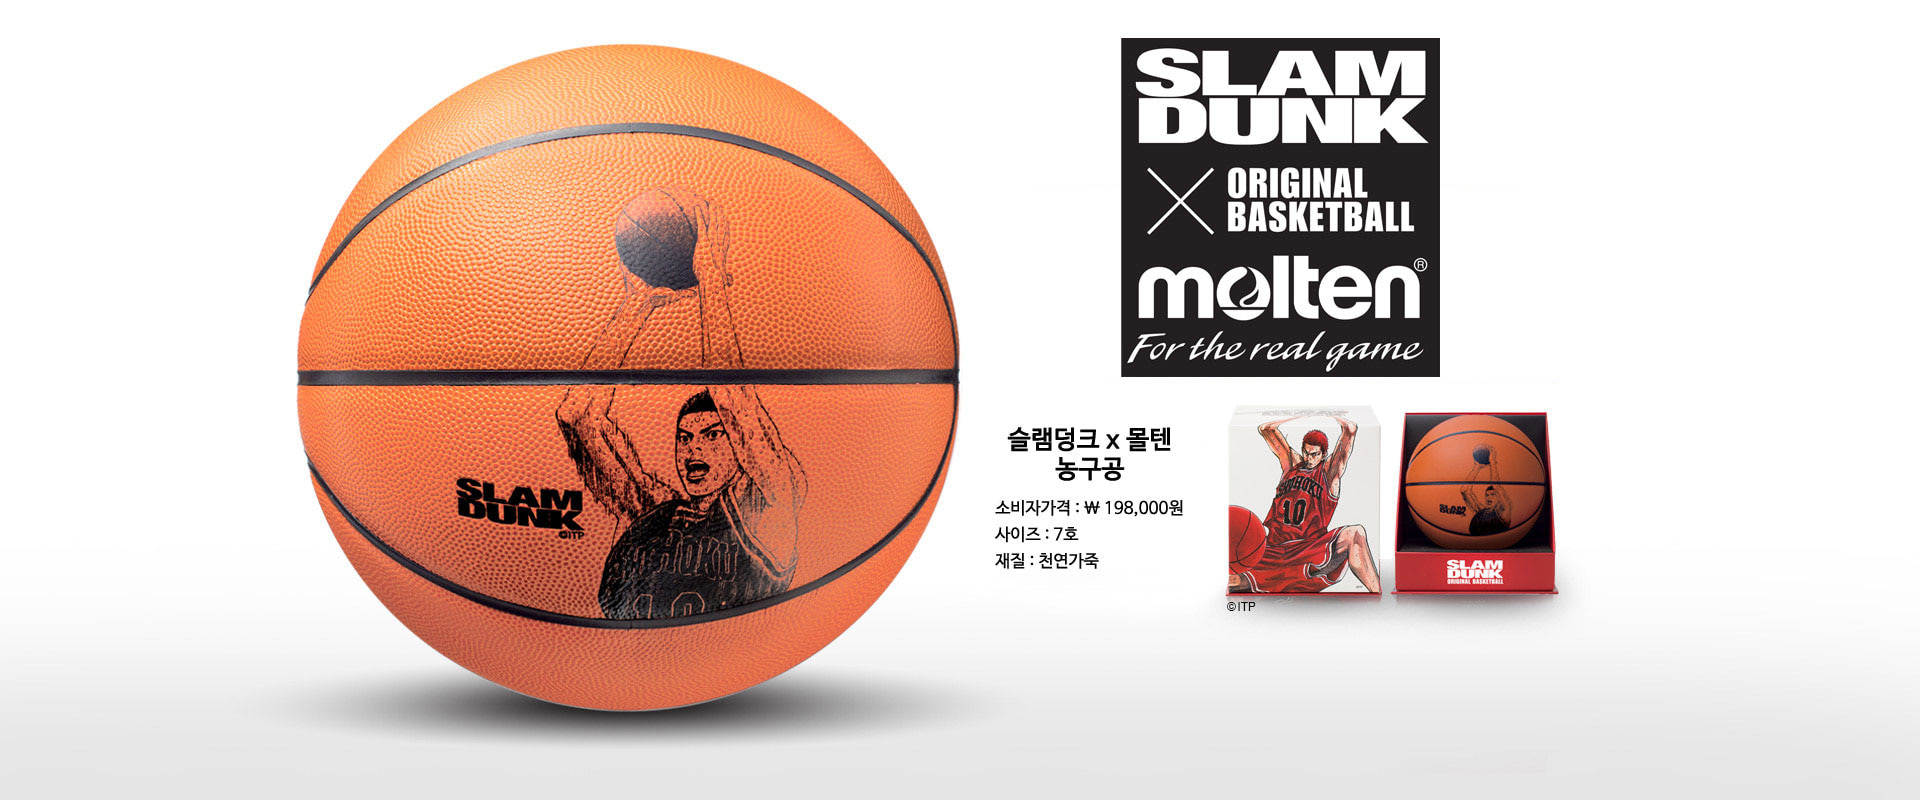 SLAMDUNK×molten ORIGINAL BASKETBALL